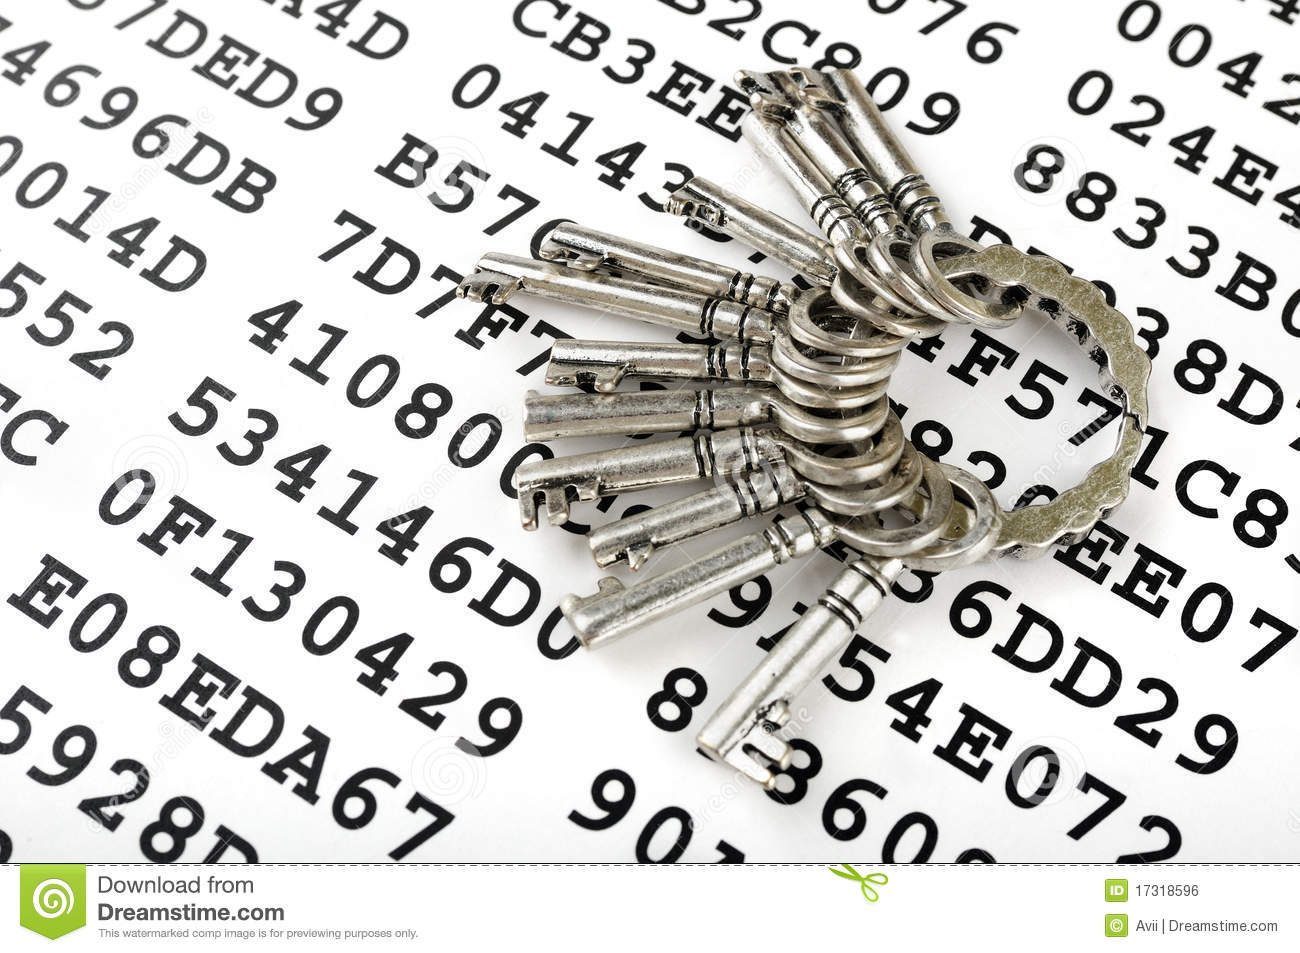 Keys on a sheet with encrypted data